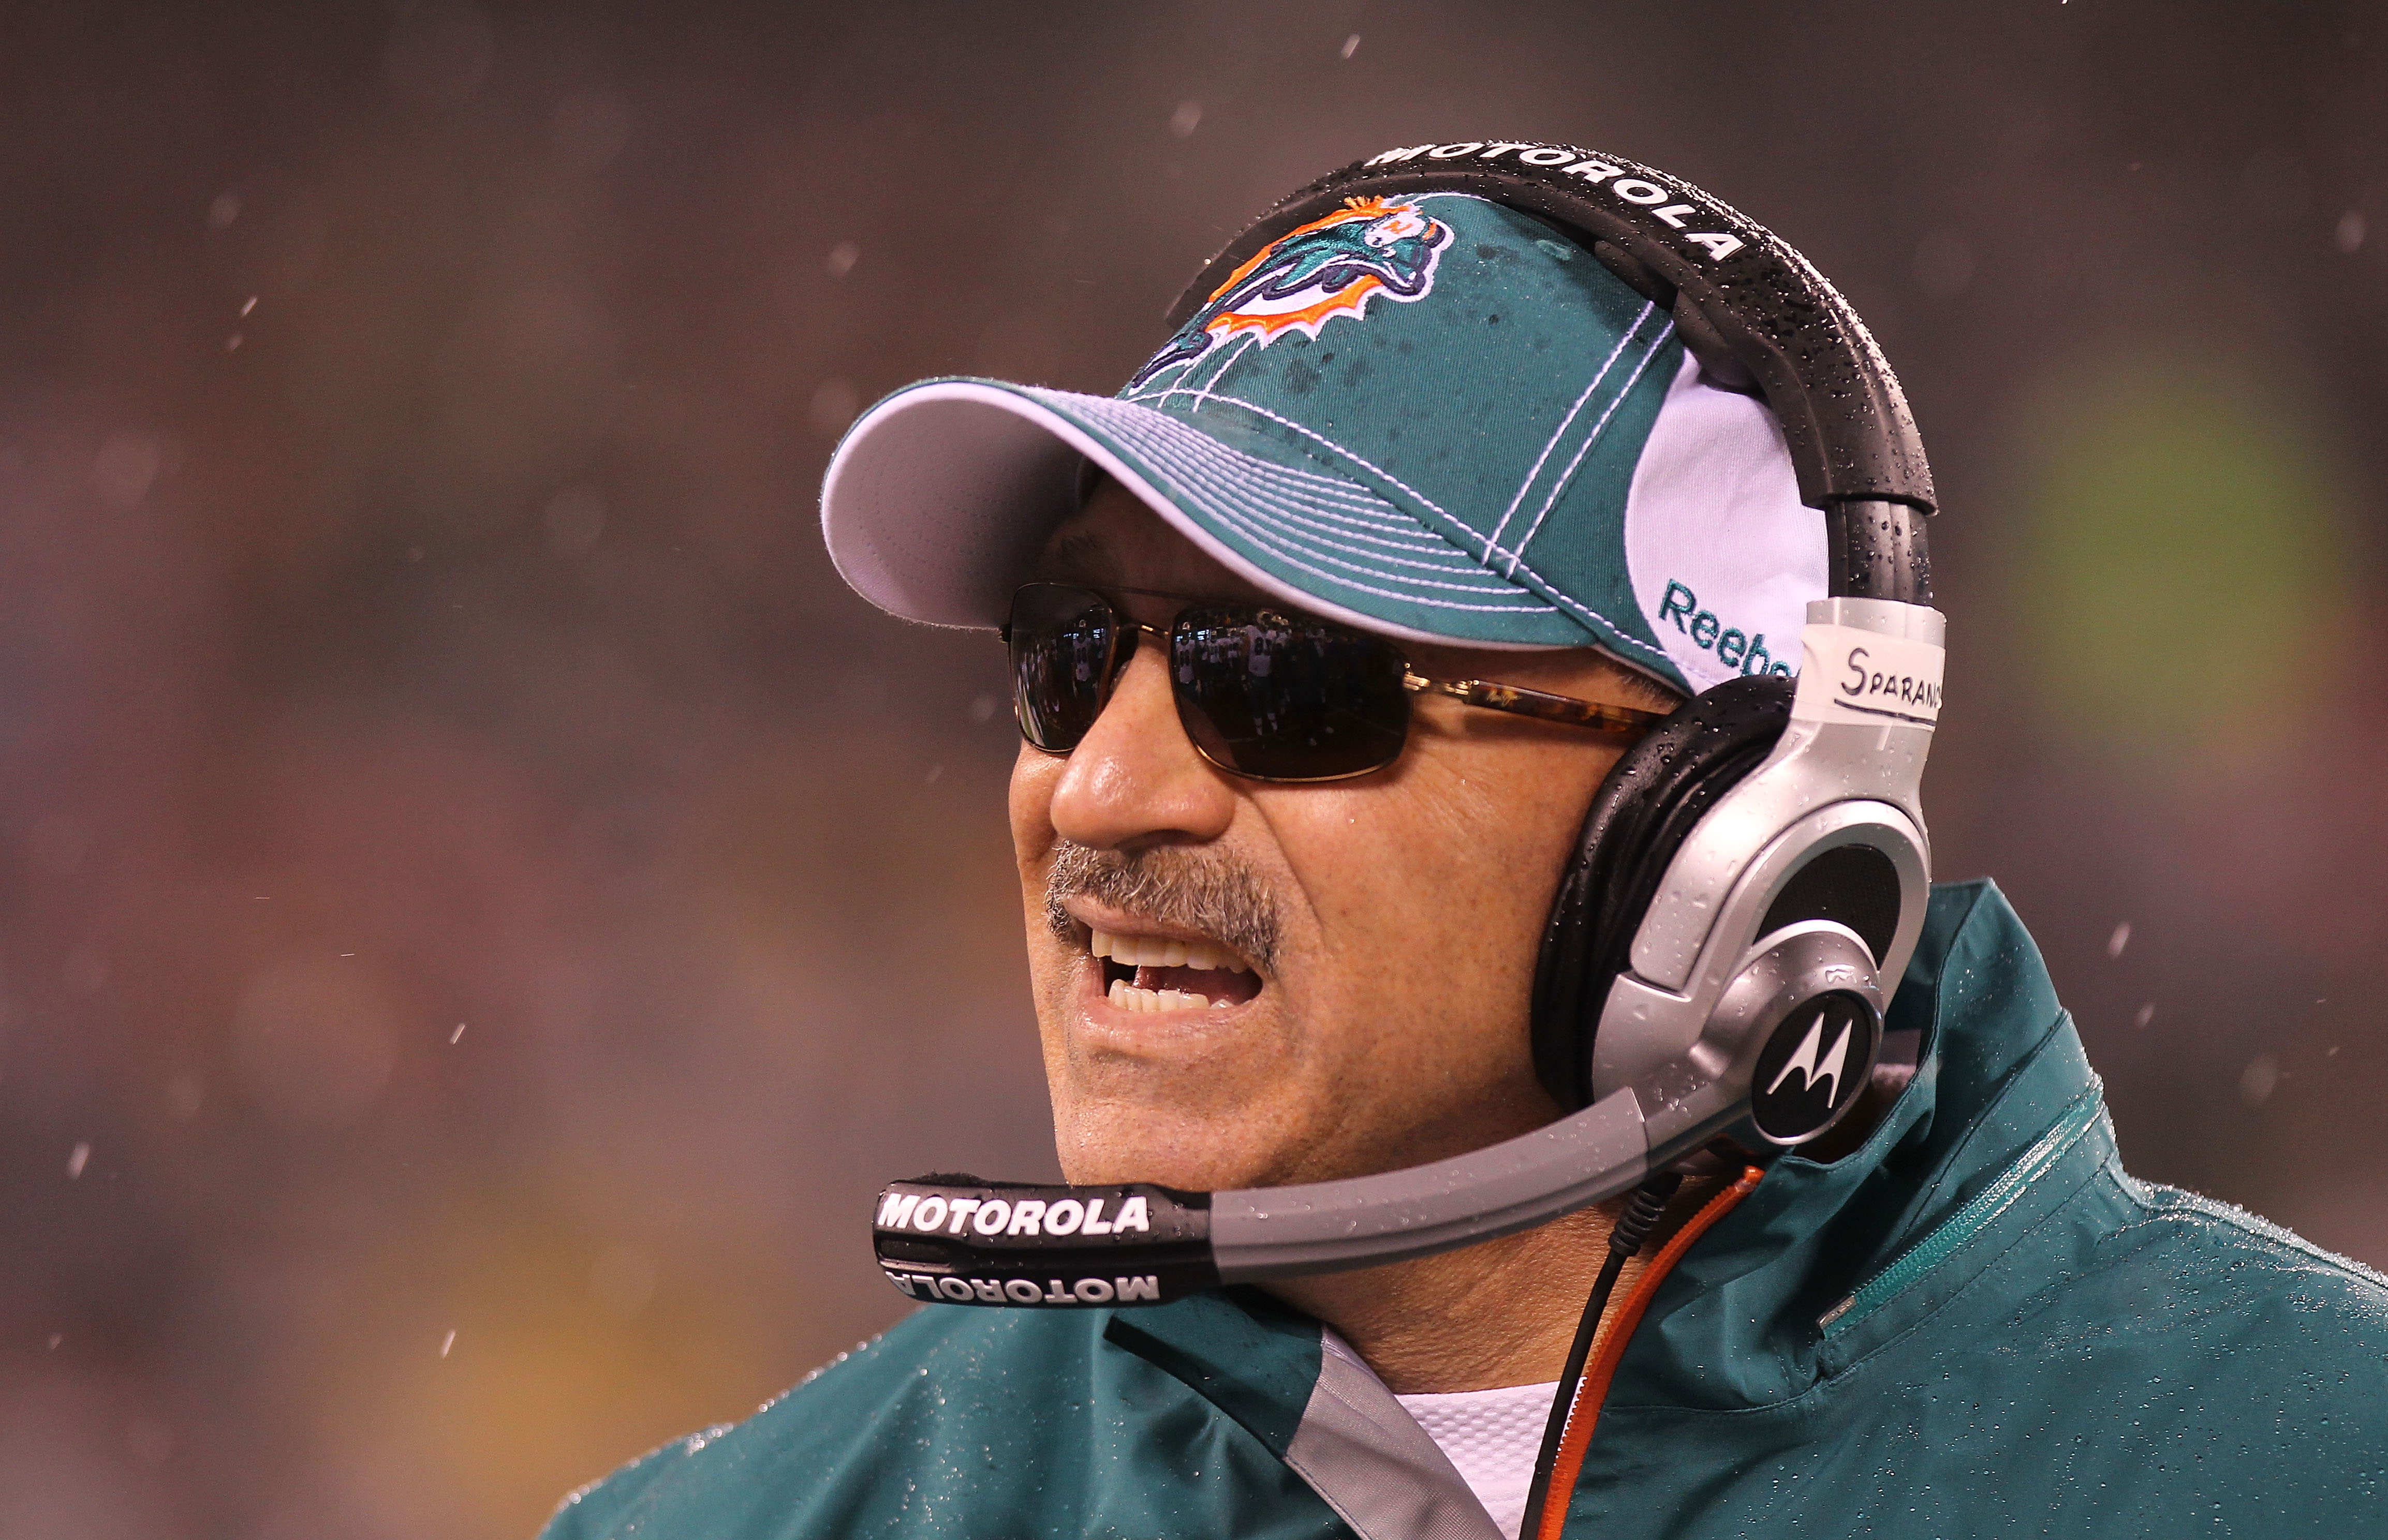 EAST RUTHERFORD, NJ - DECEMBER 12:  Head coach of the Miami Dolphins, Tony Sparano on the sideline against the New York Jets at New Meadowlands Stadium on December 12, 2010 in East Rutherford, New Jersey.  (Photo by Nick Laham/Getty Images)